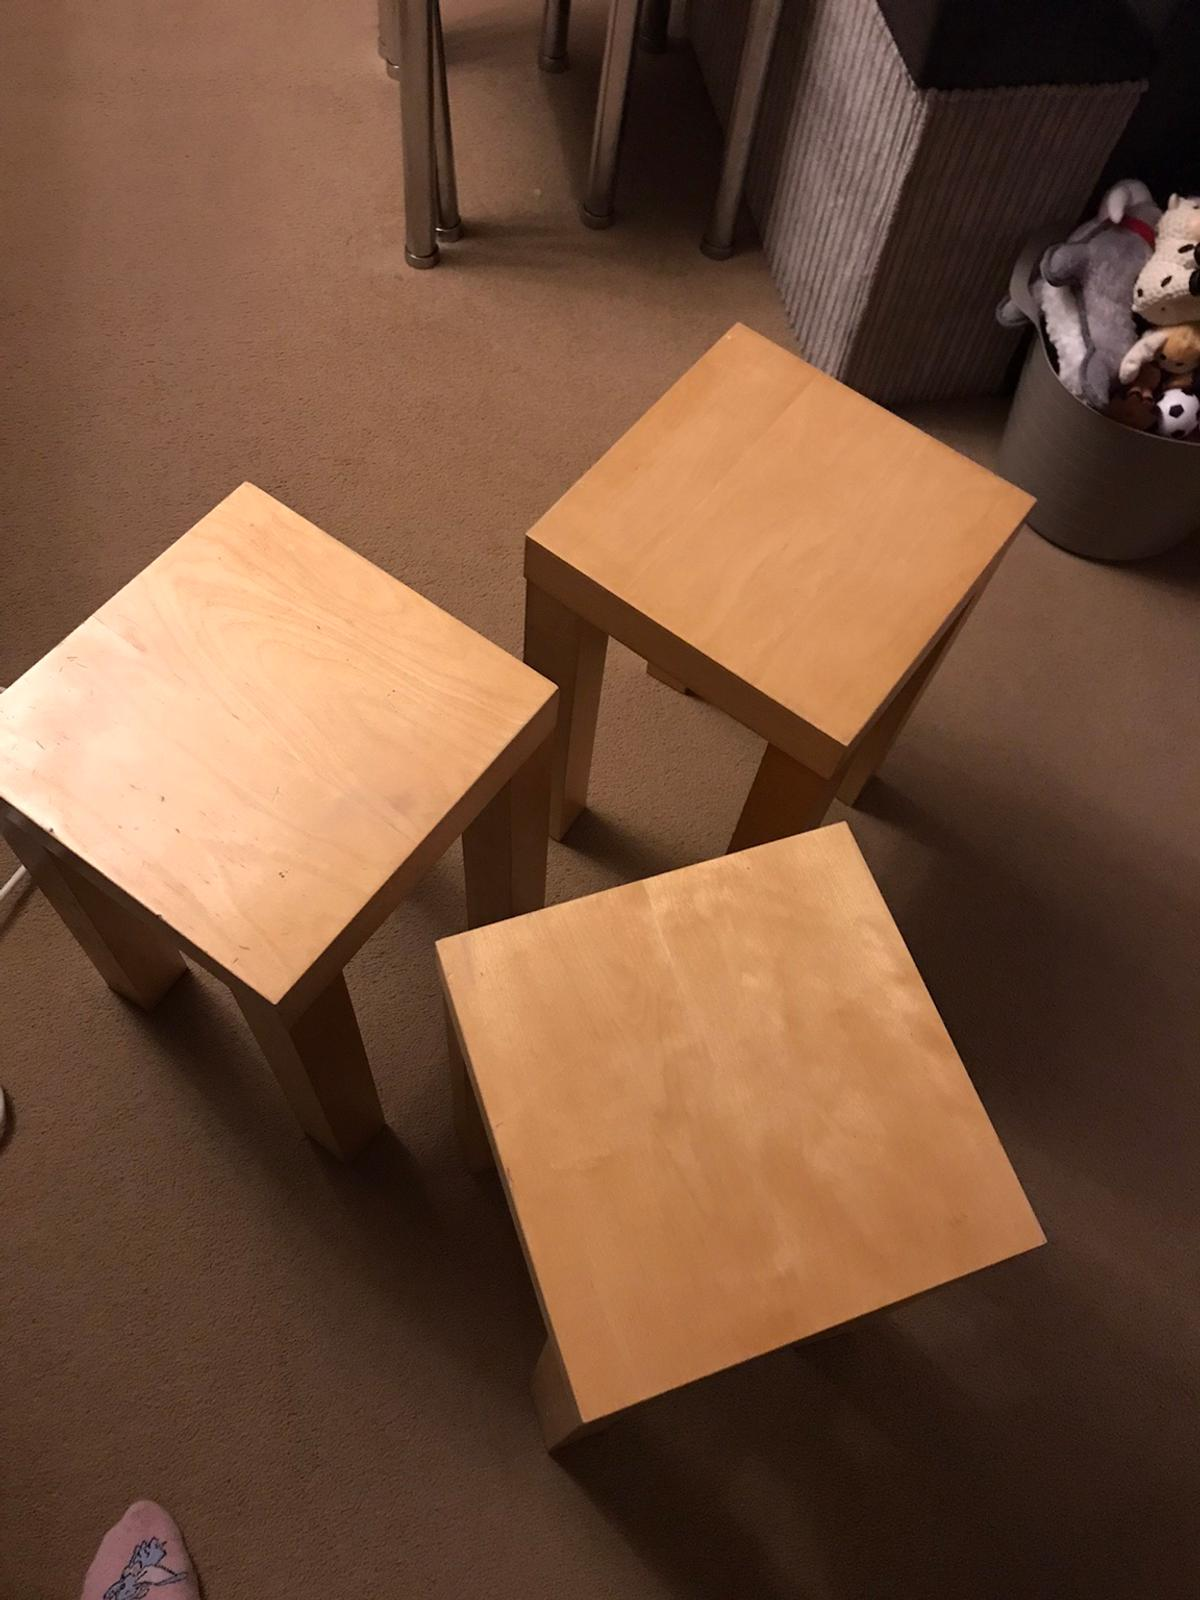 3 side tables and 1 larger one. Larger one has a few marks on as show in picture 3. £5 for all 4 tables need gone. Larger table has been taken apart for storage. Collection from dy9 Stourbridge